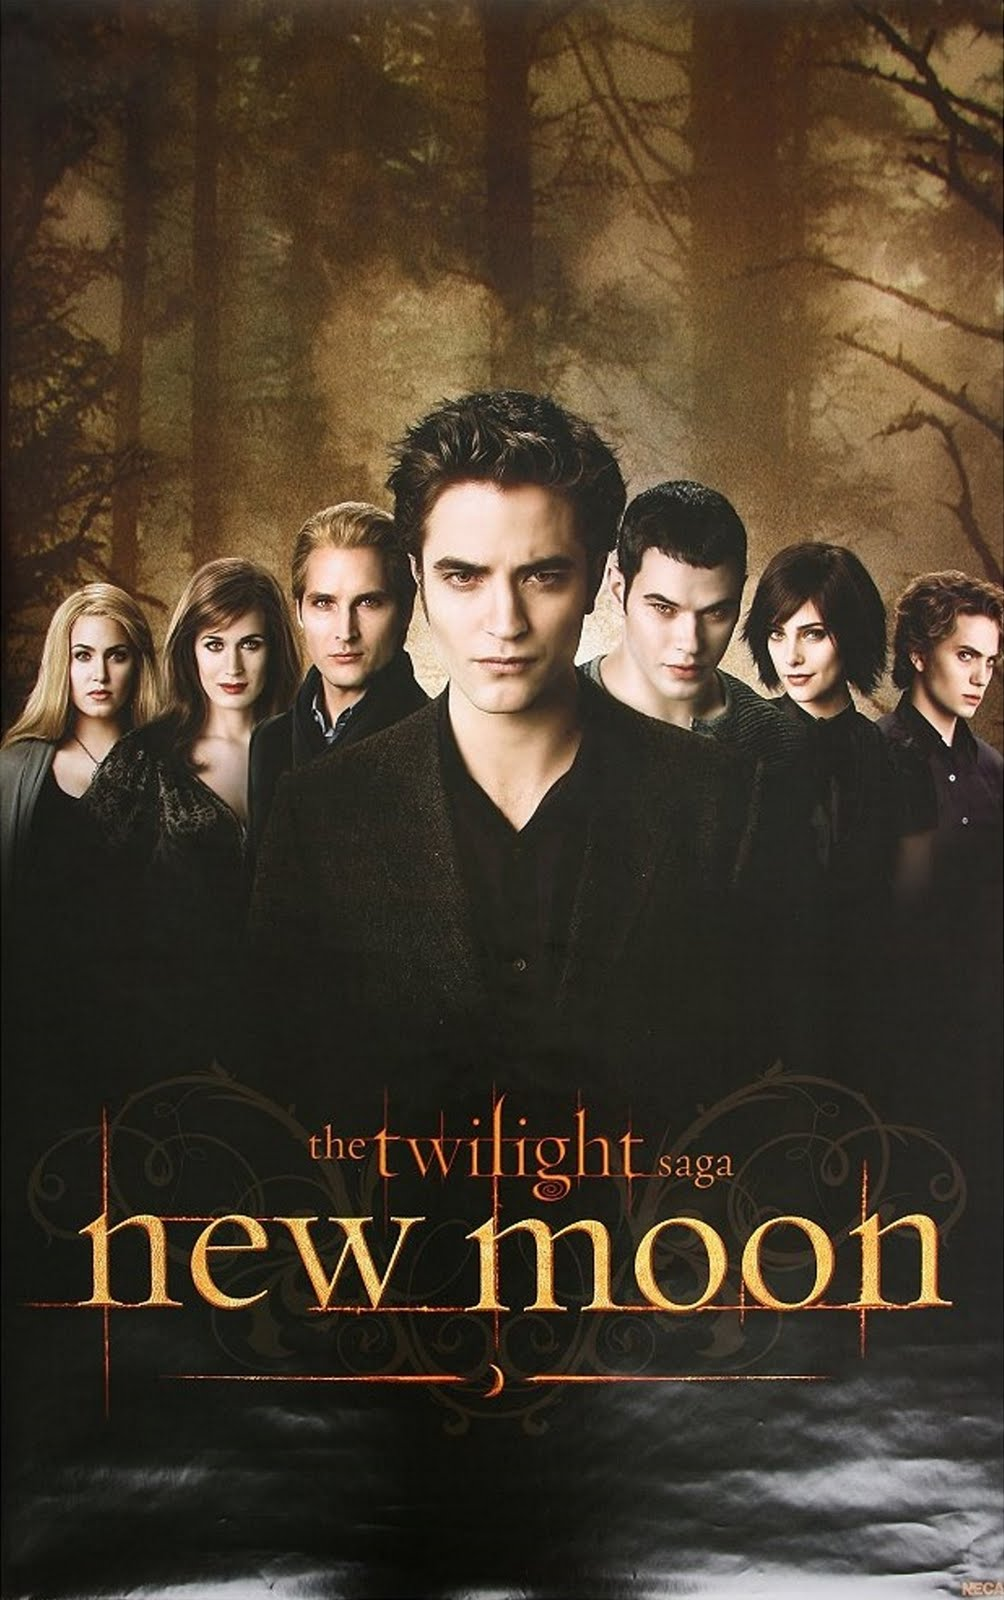 edward cullen new moon poster